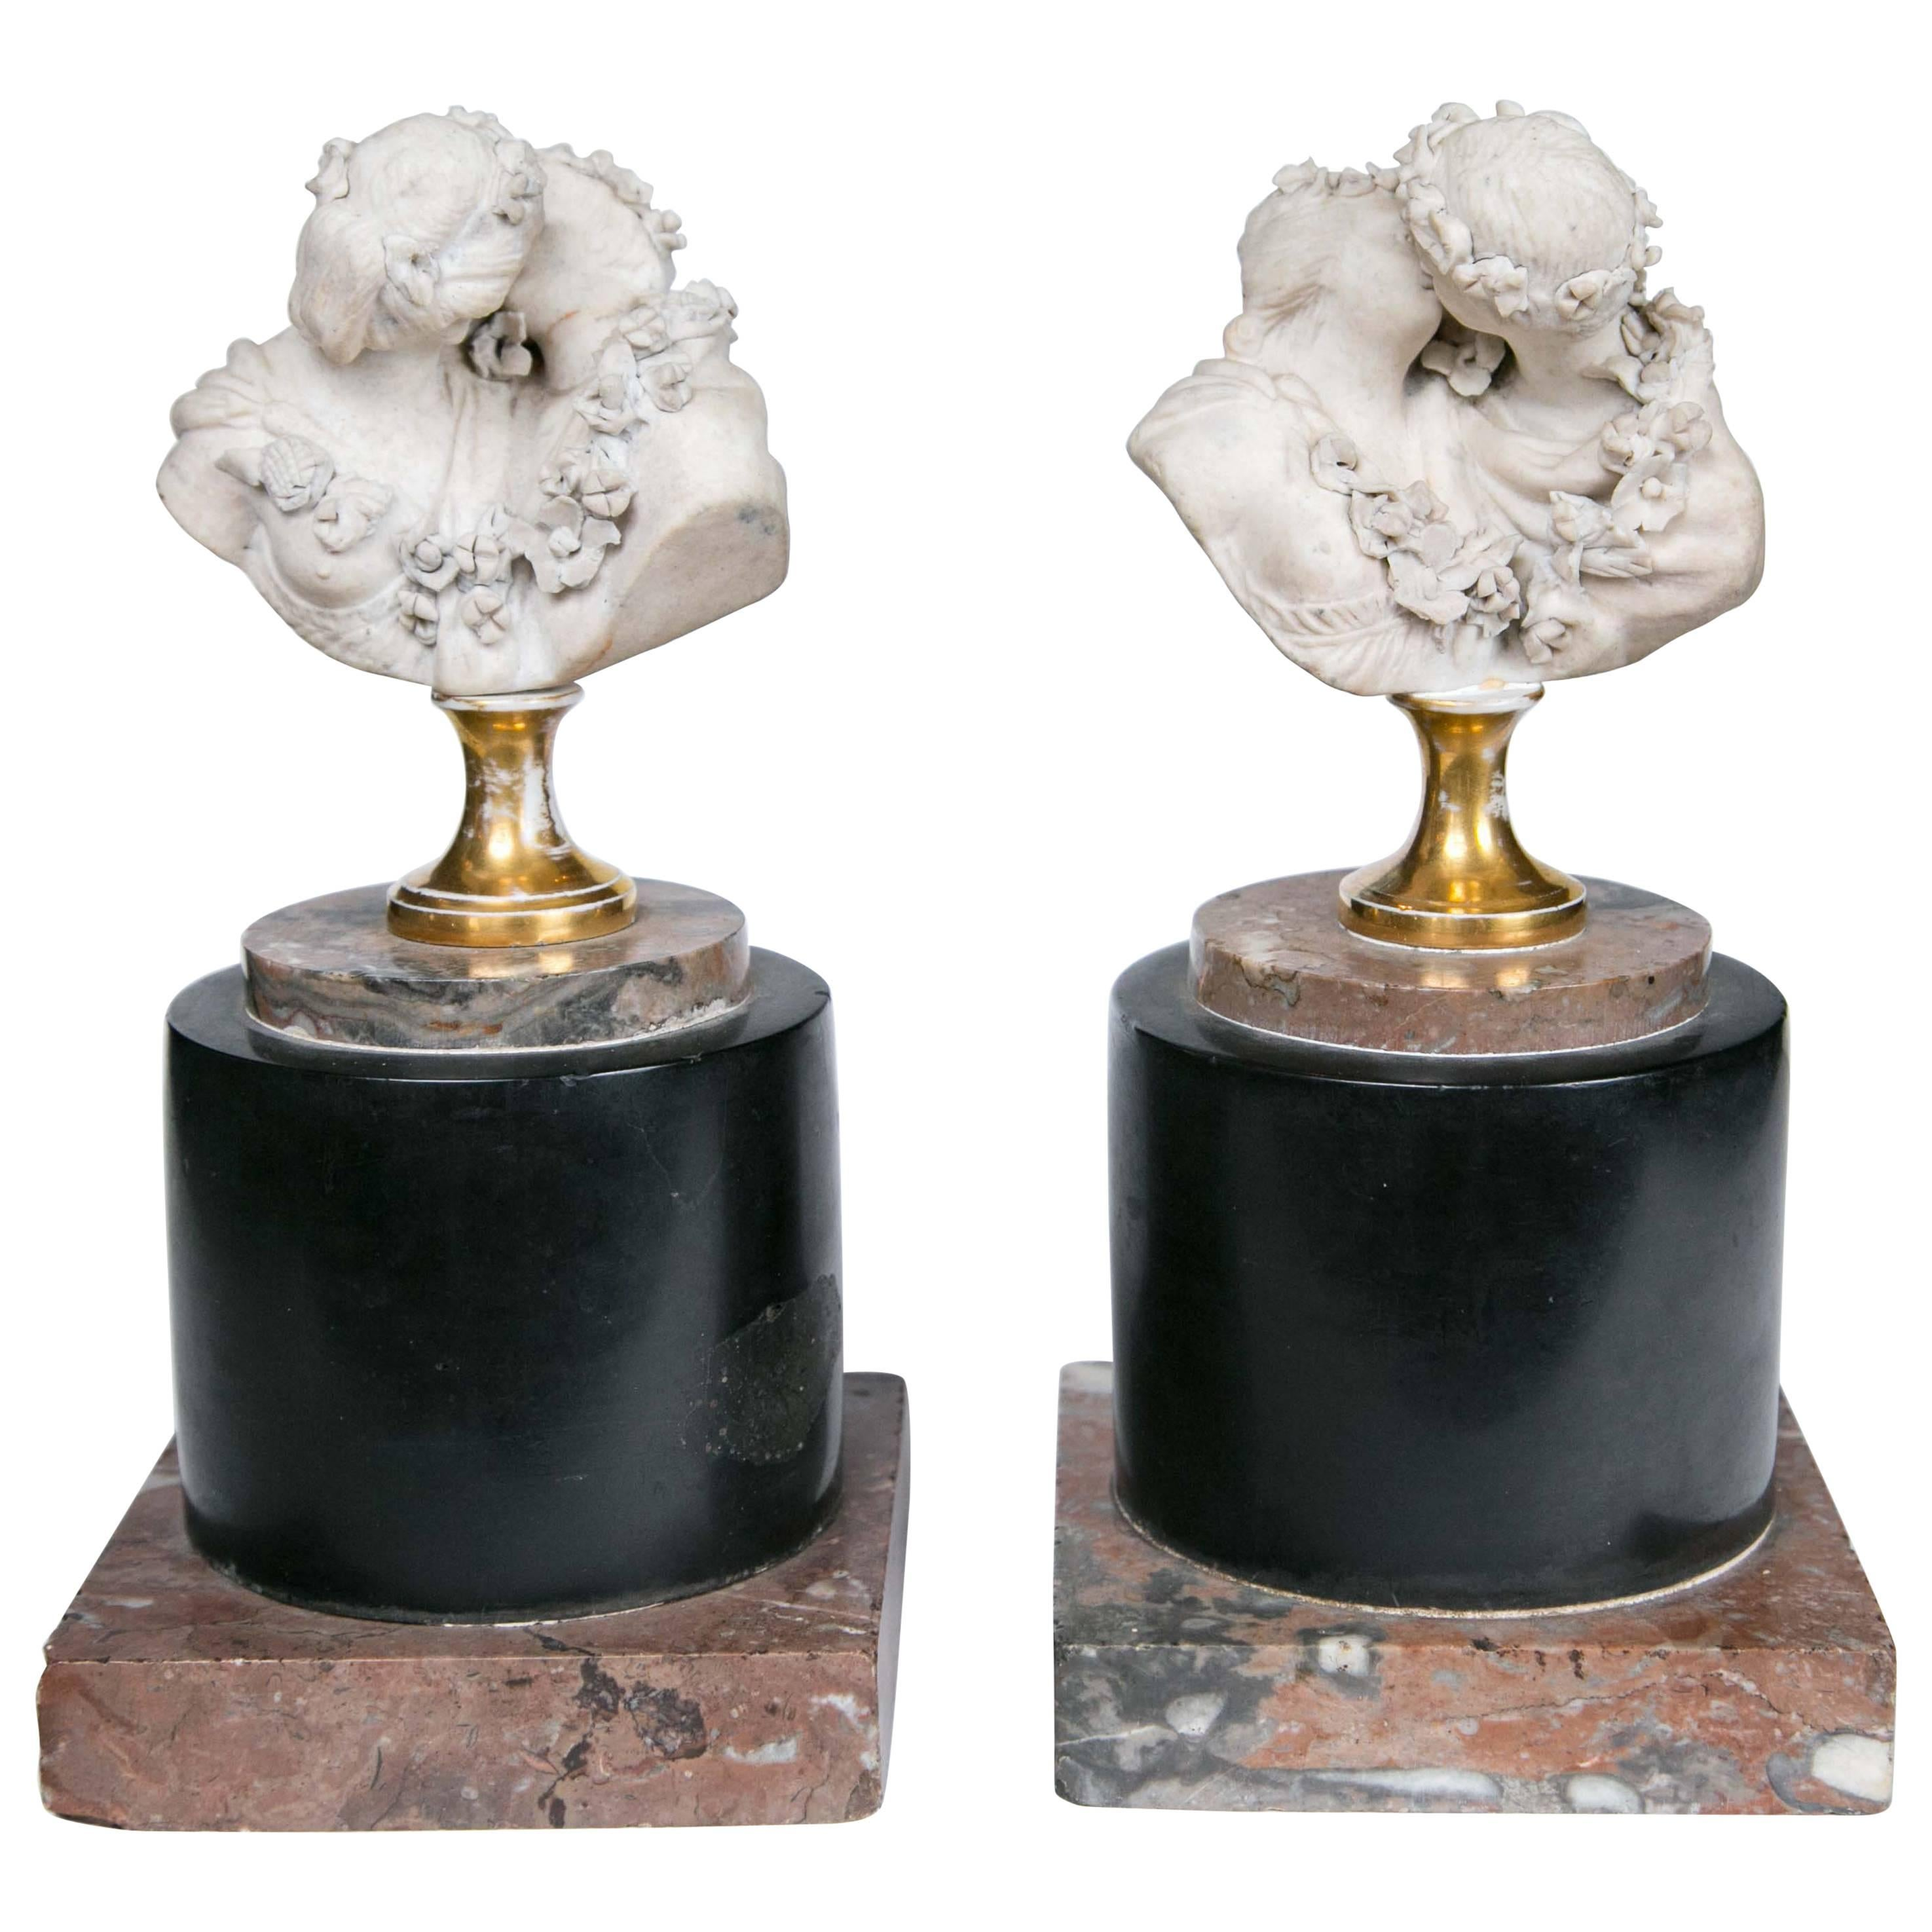 Pair of French Biscuit  Busts of Le Baiser Donne, after Houdon